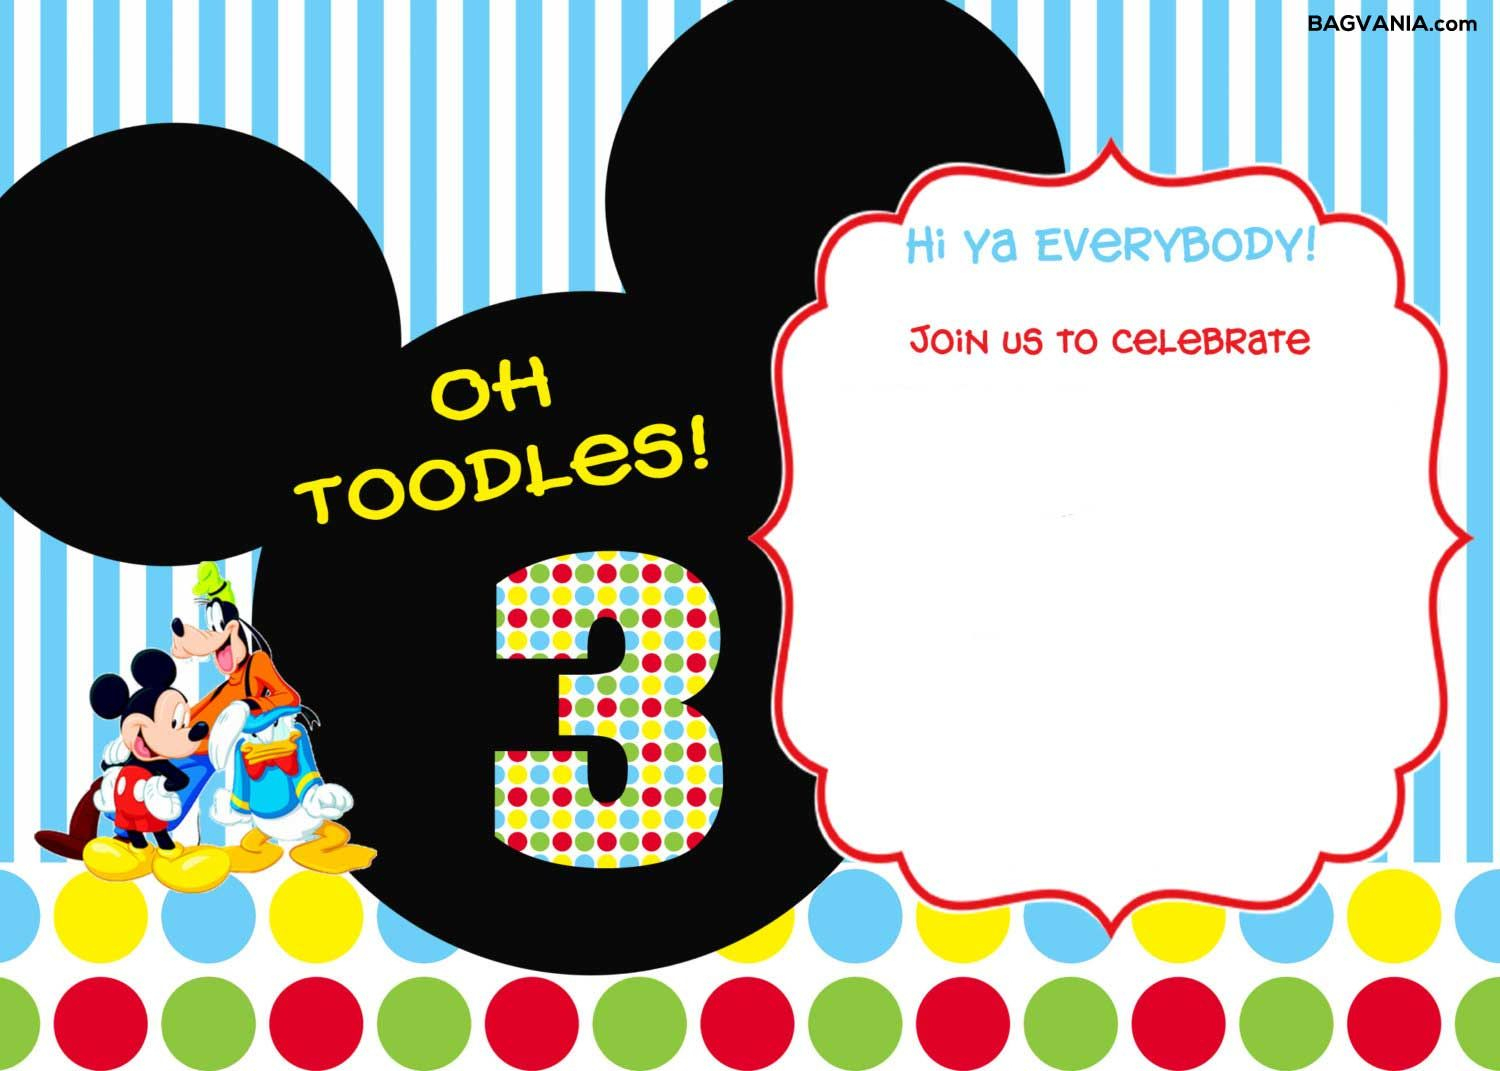 Download Free Printable Mickey Mouse Birthday Invitations | Bagvania - Free Printable Mickey Mouse Invitations